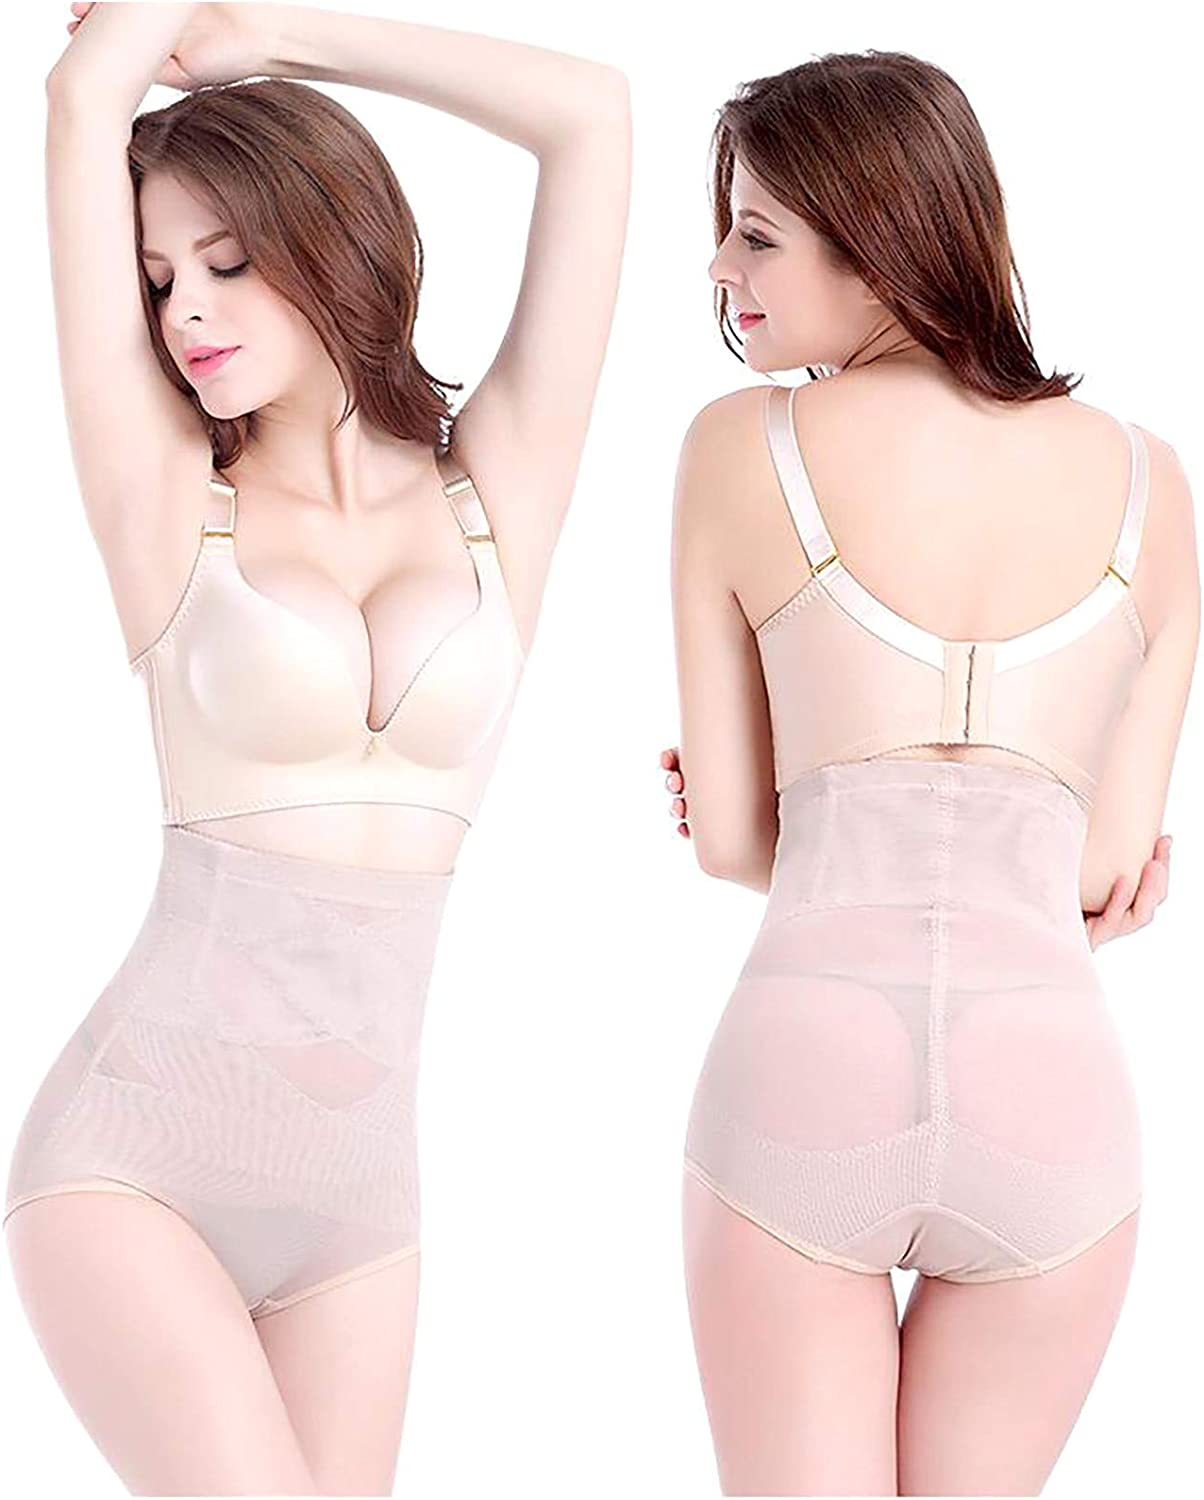 HEling Shapewear for Women Beauty Slim Cross Cover Cellulite Fork Compression Shaping Pants Tummy Control Underwear